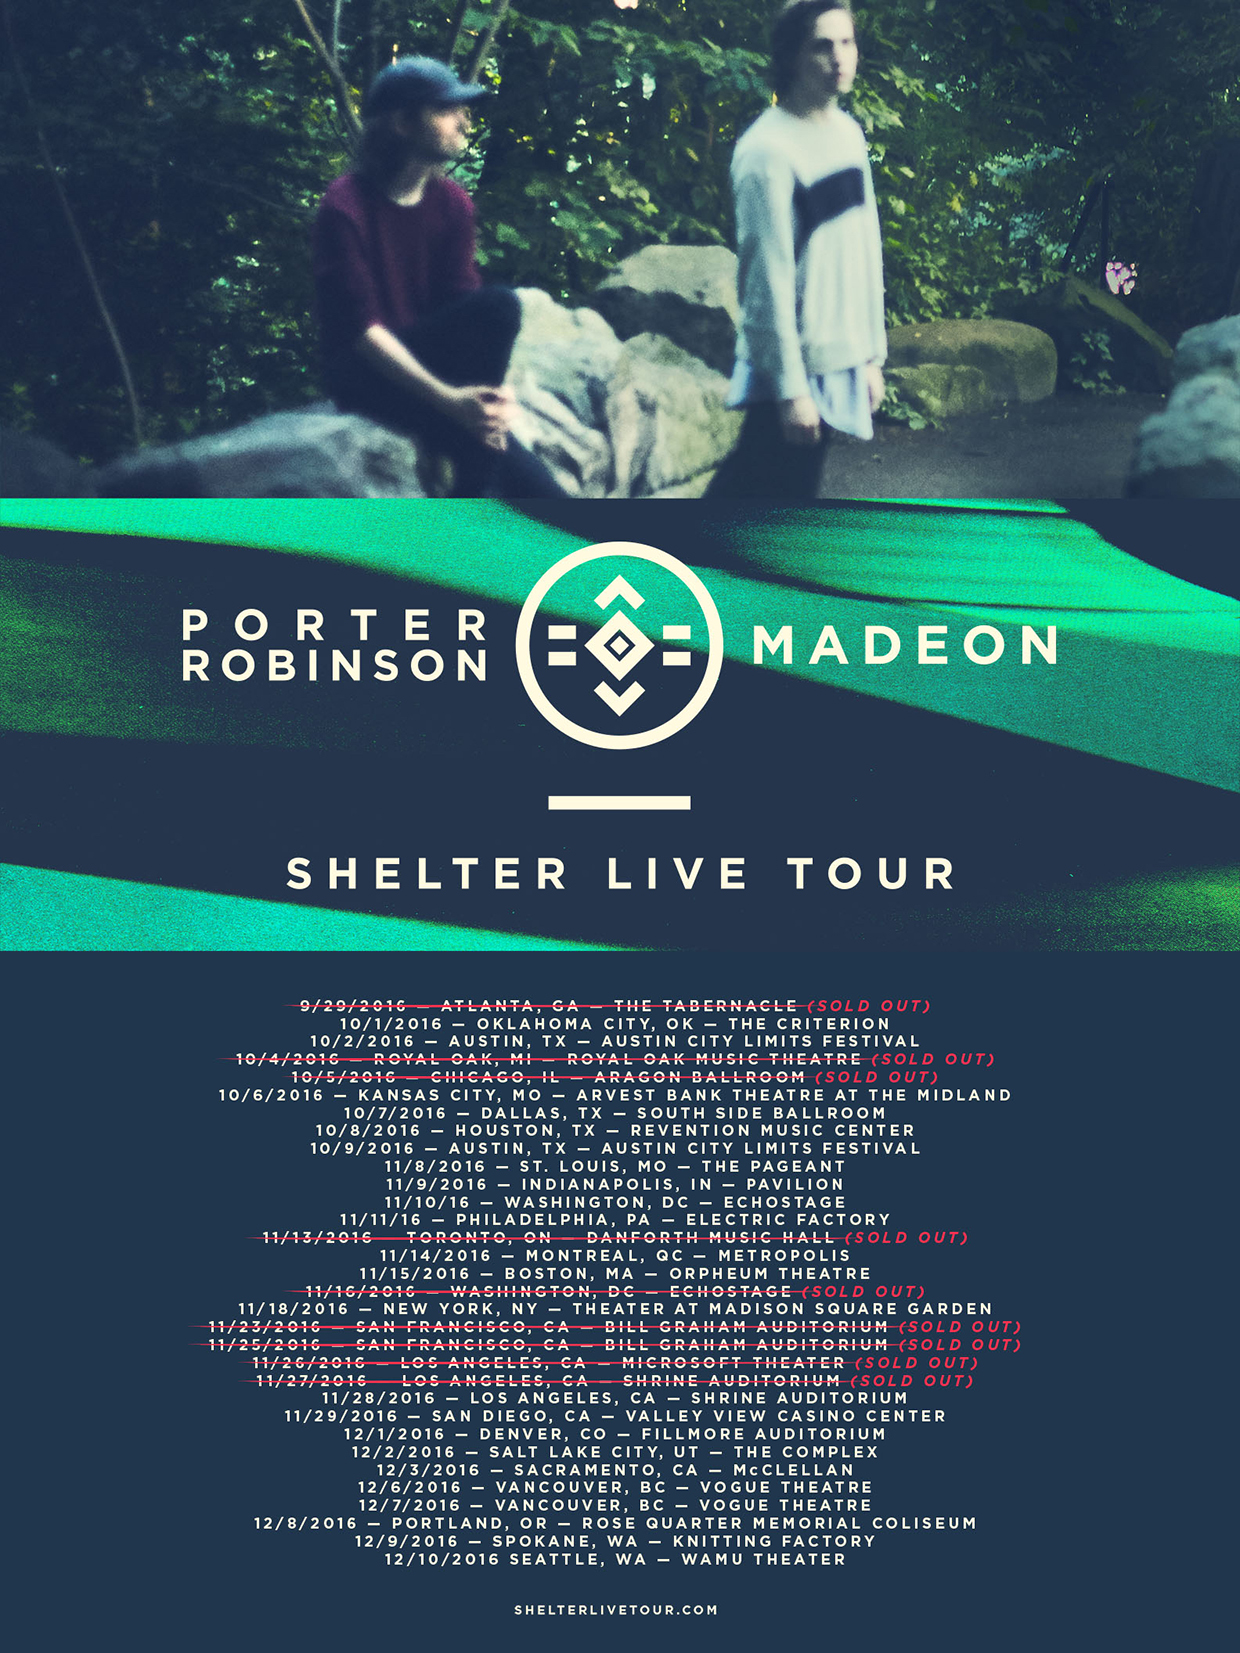 prm-shelter-tour-flyer-2016-billboard-1240